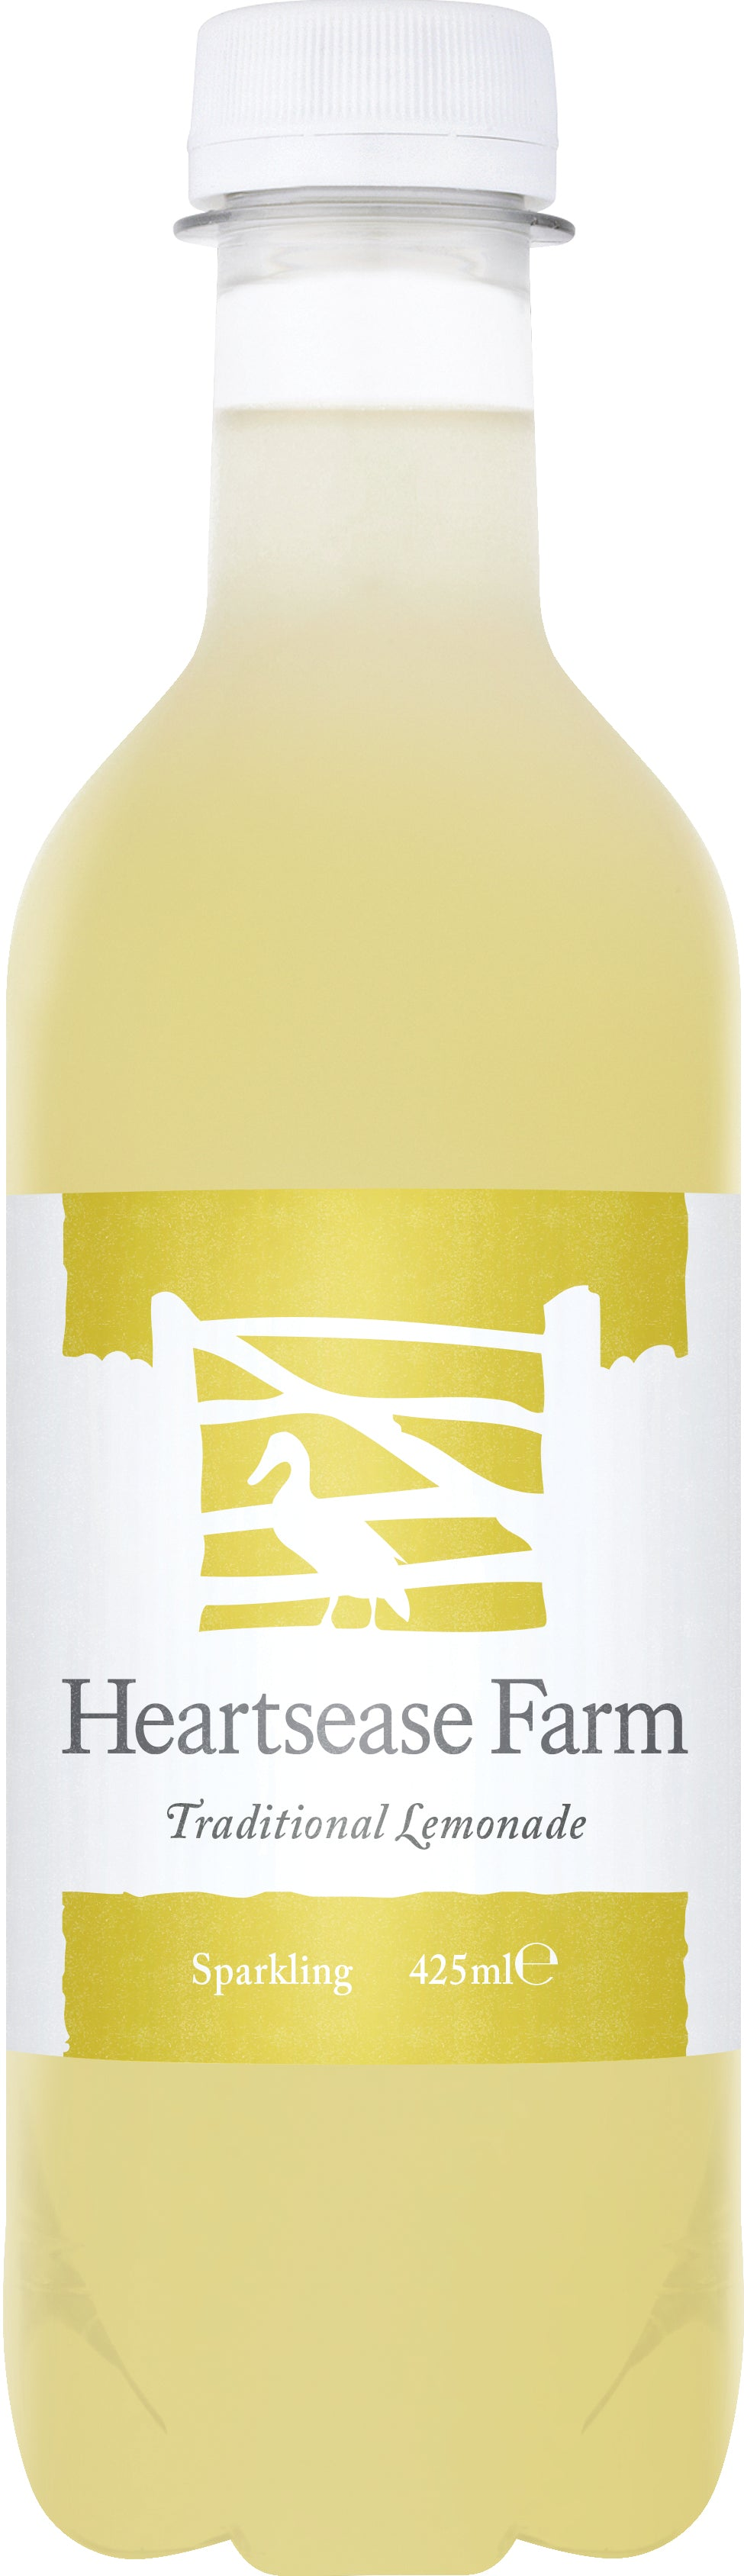 Traditional Lemonade (12x425ml)